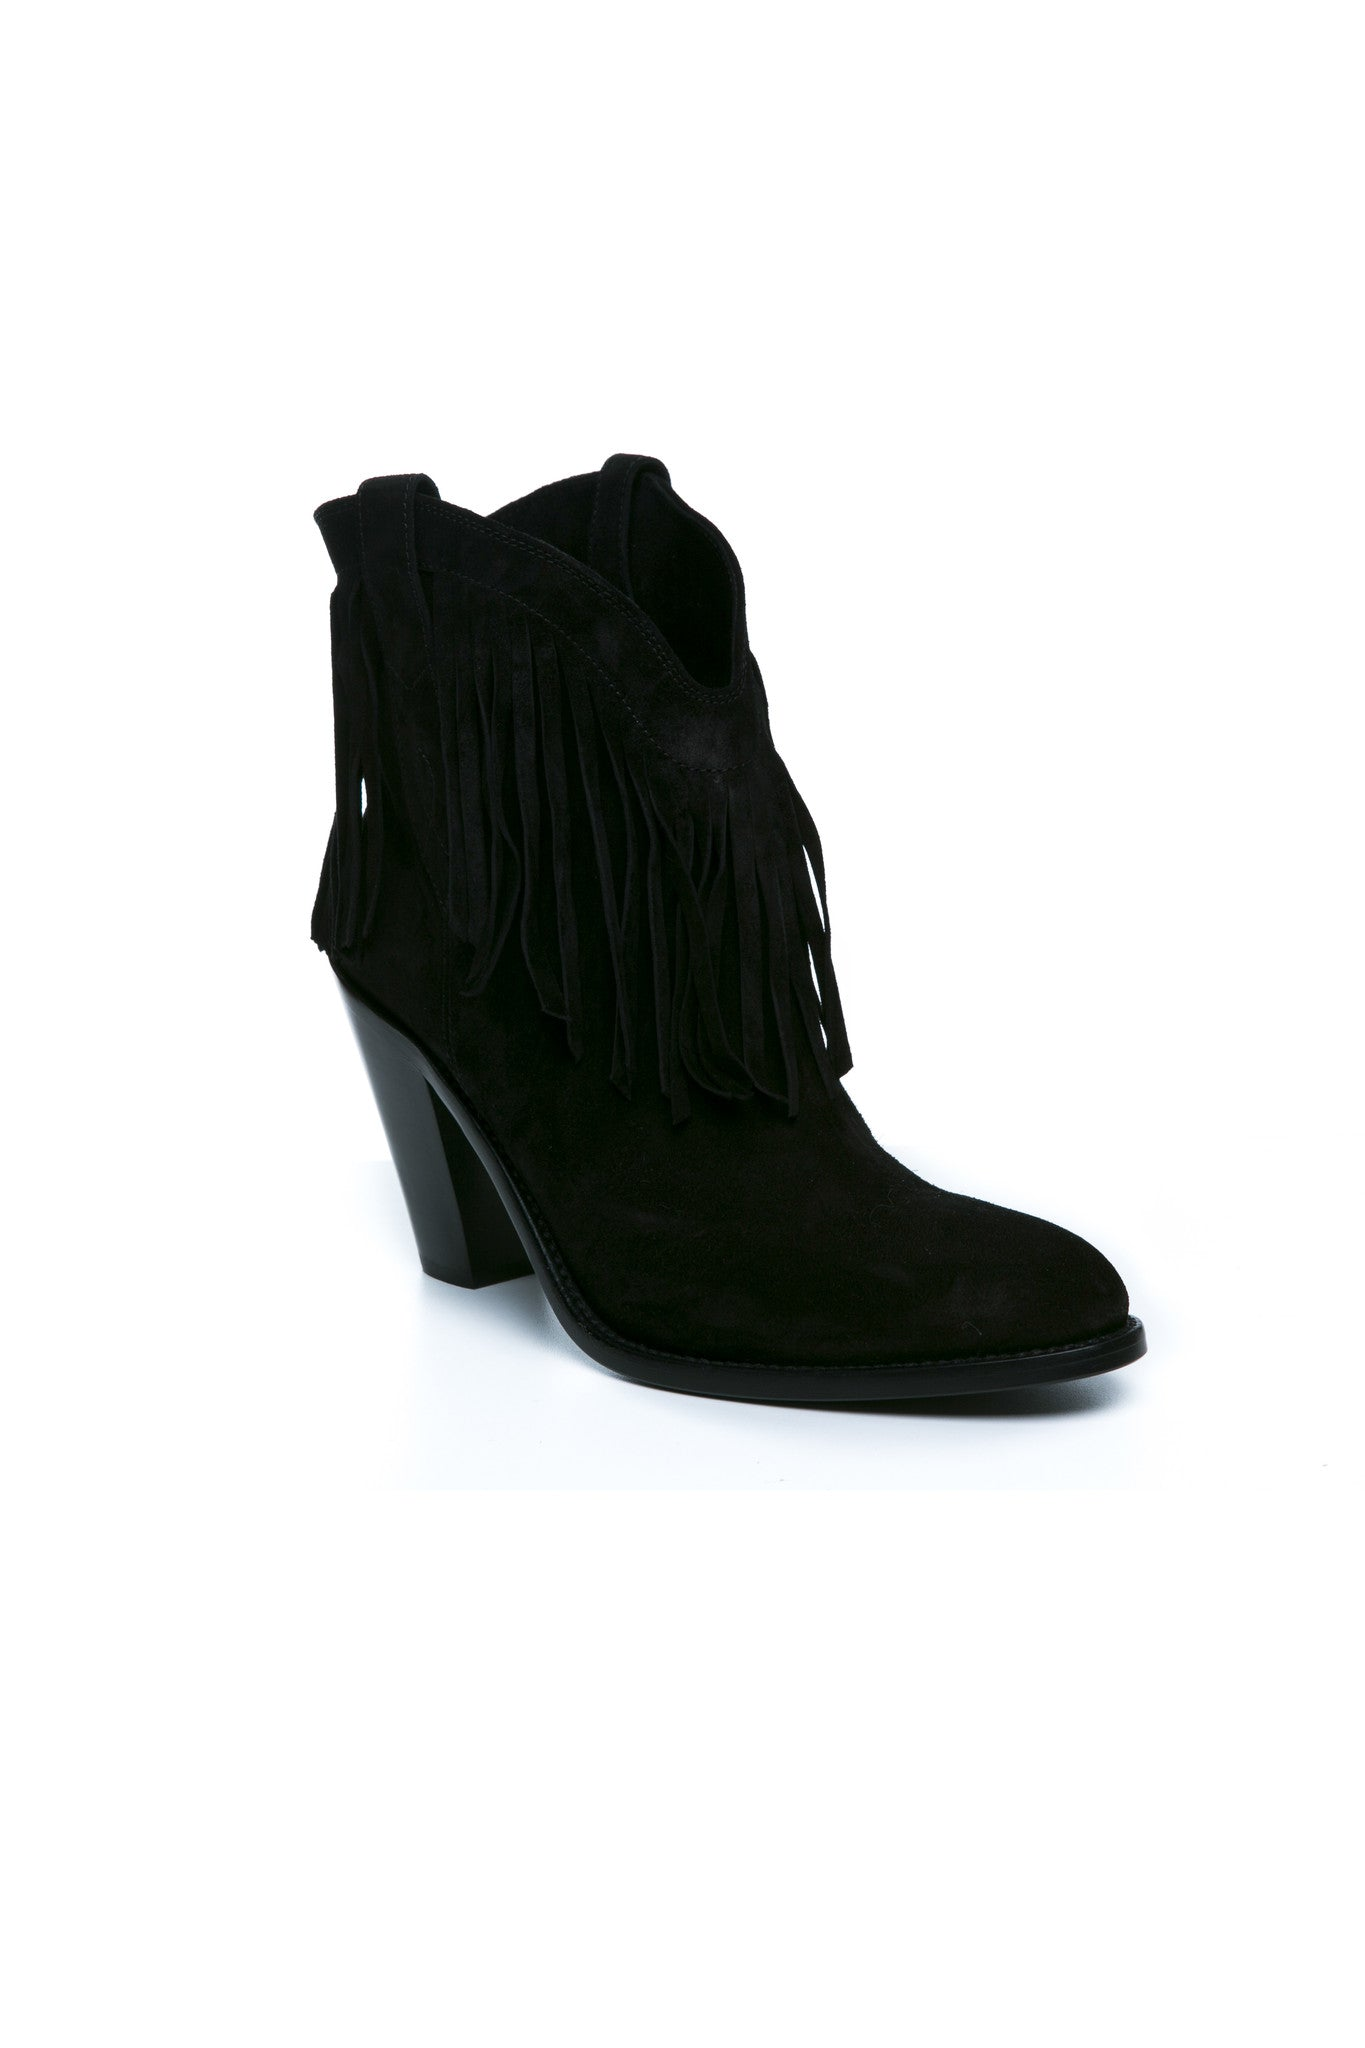 CURTIS FRINGED BOOT SUEDE